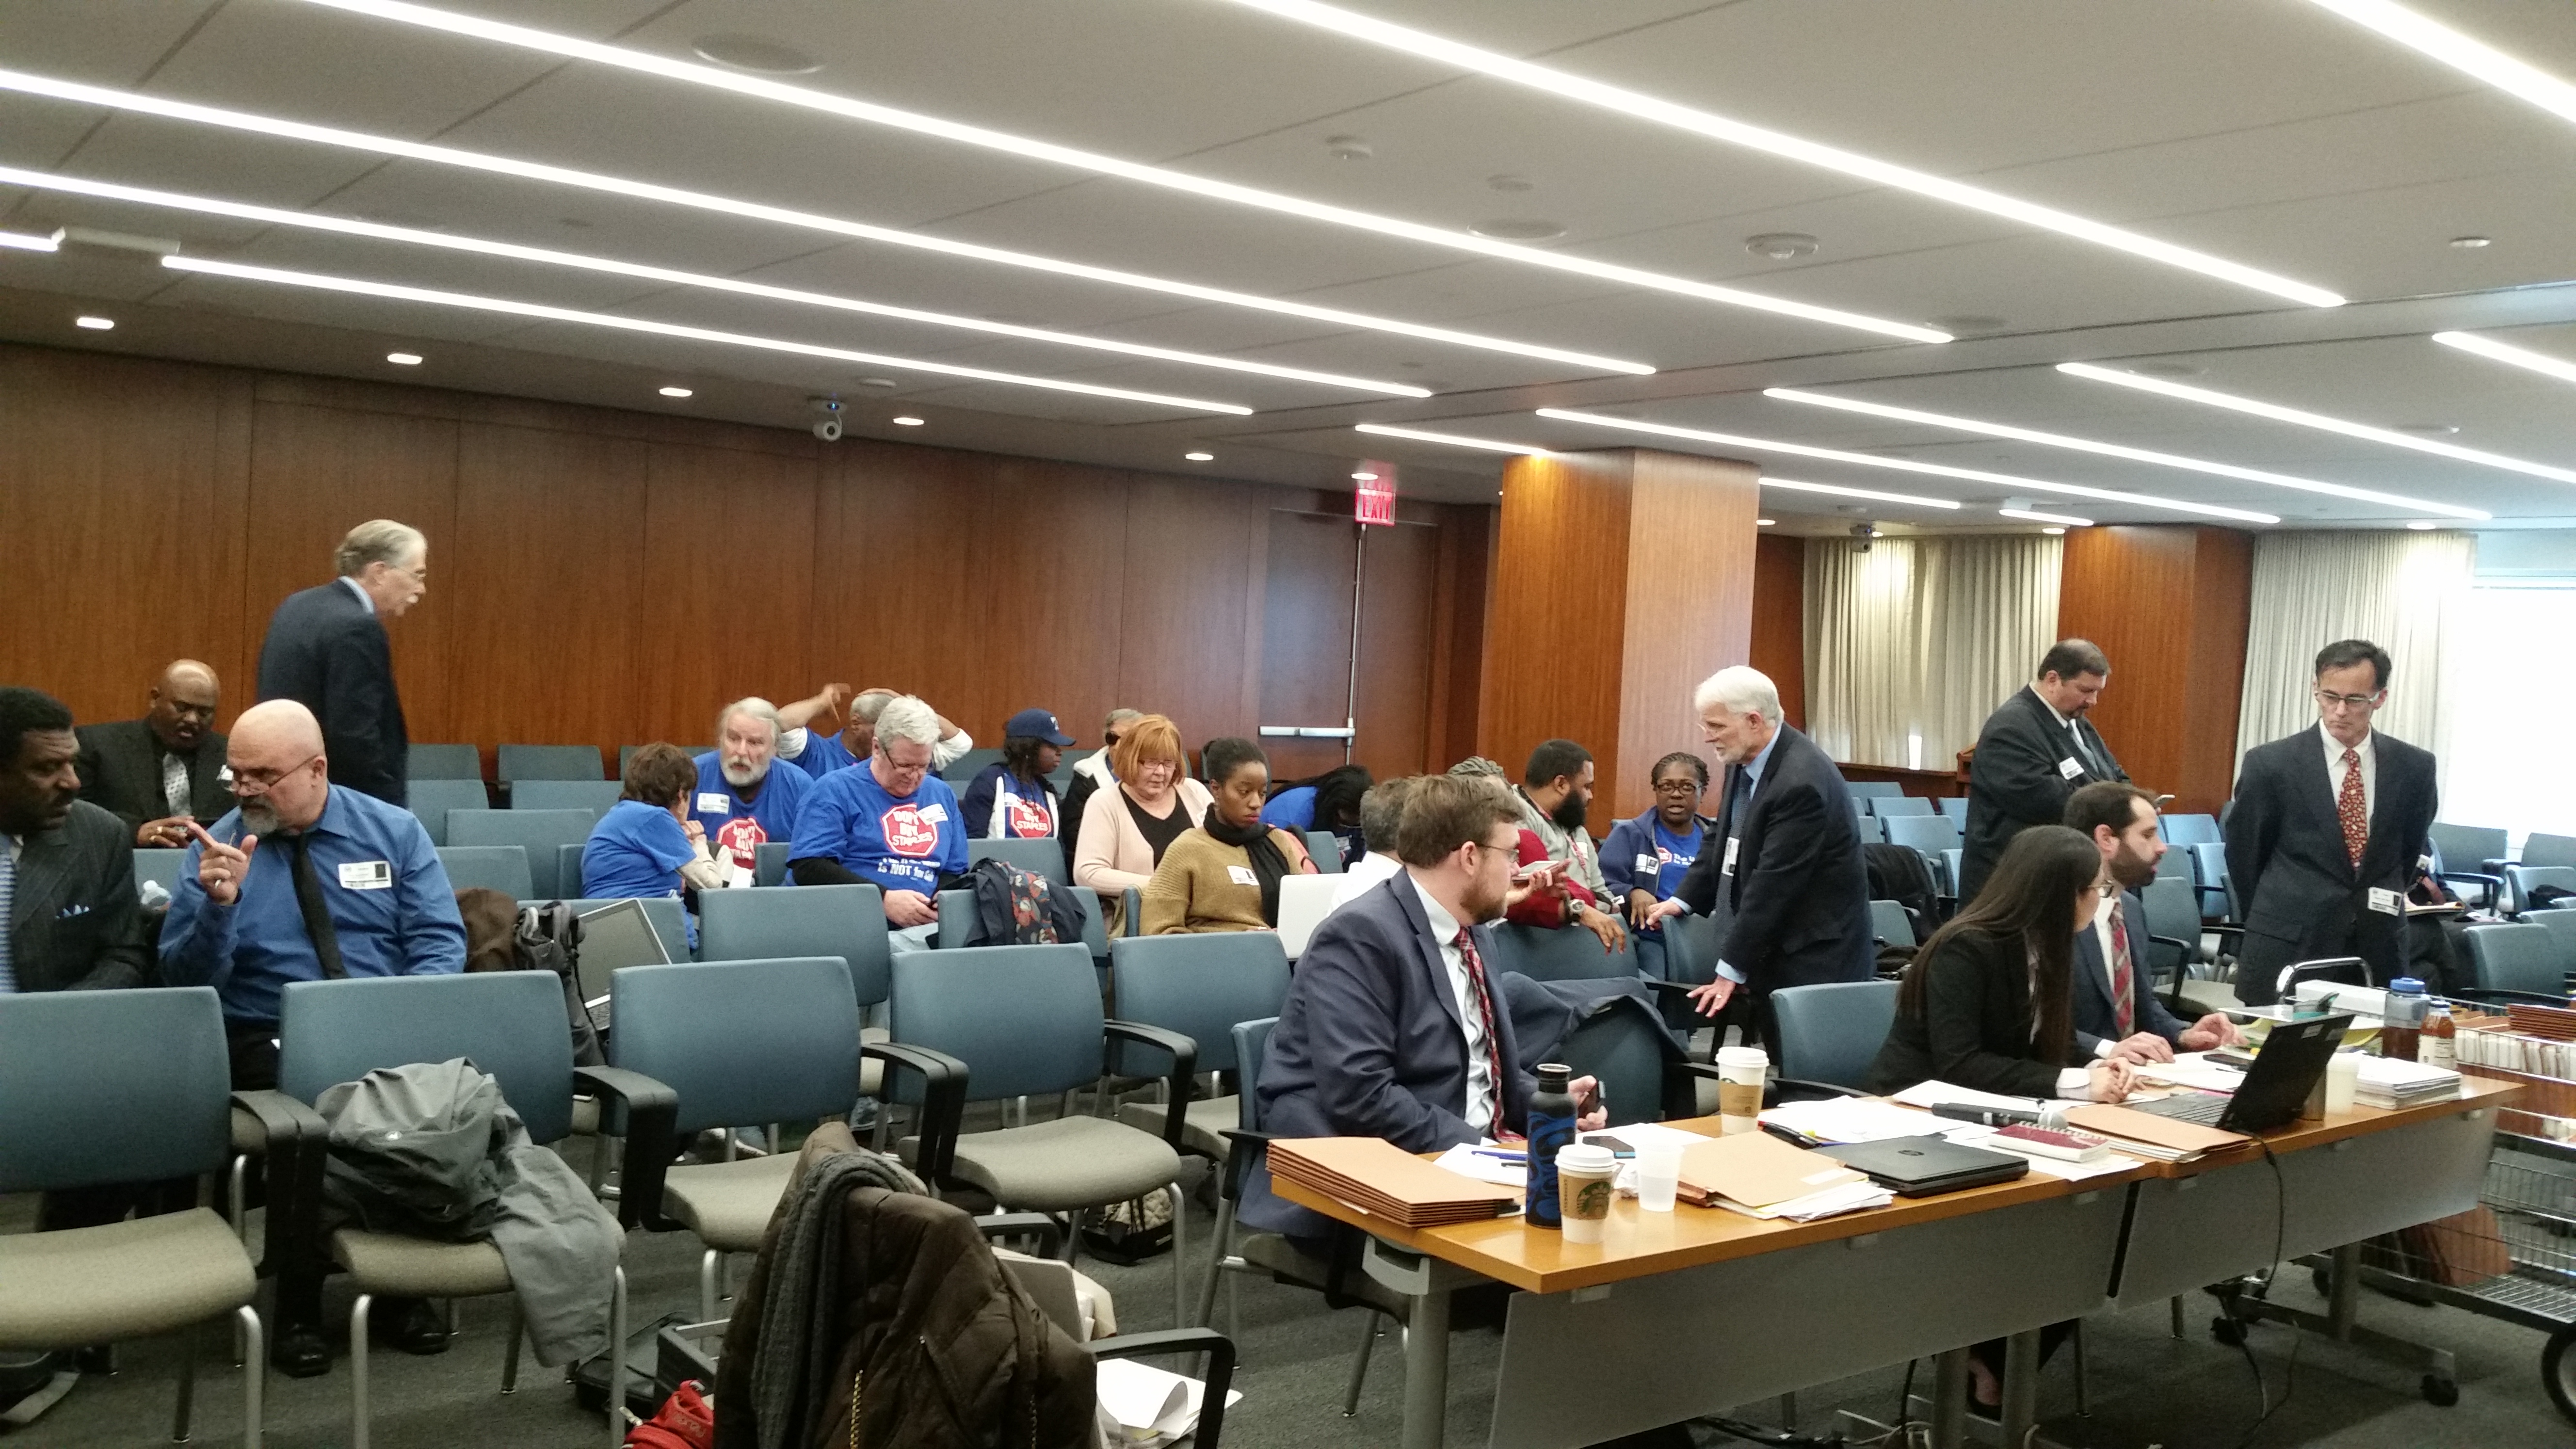 APWU: NLRB Hearing on Staples Deal Finally Gets to the Heart of the .